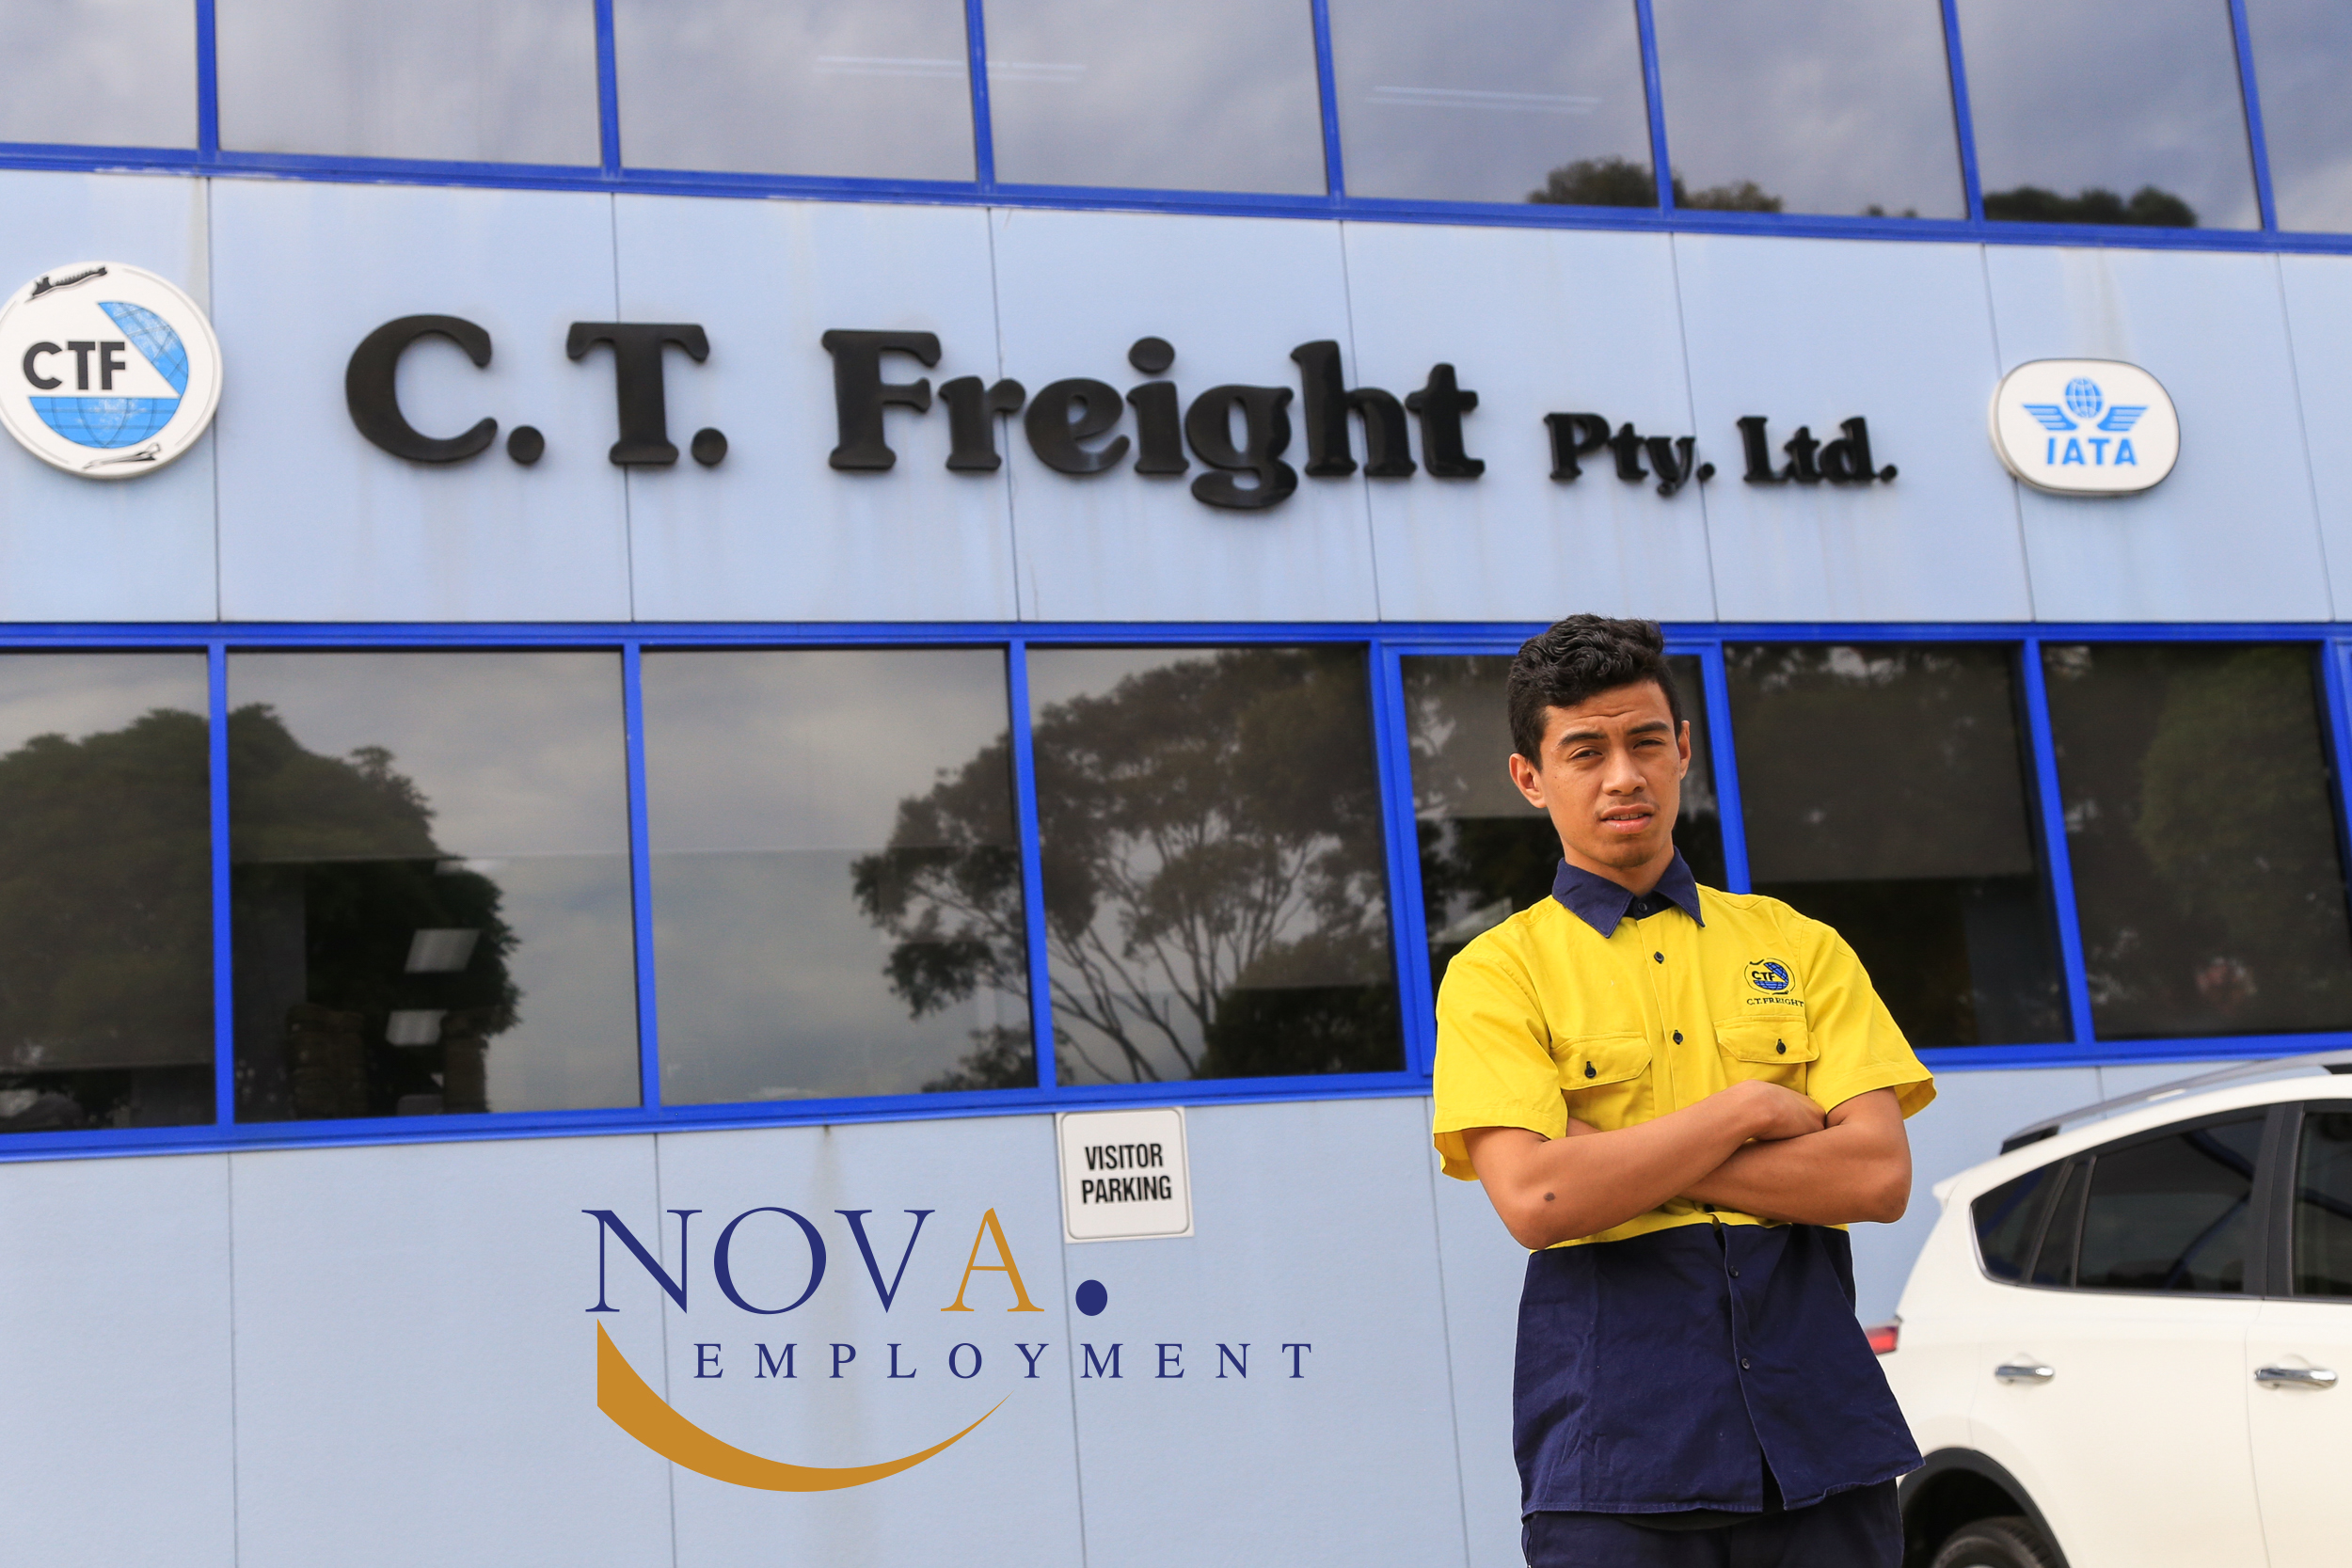 Article image for Nova Employment: The stories of success